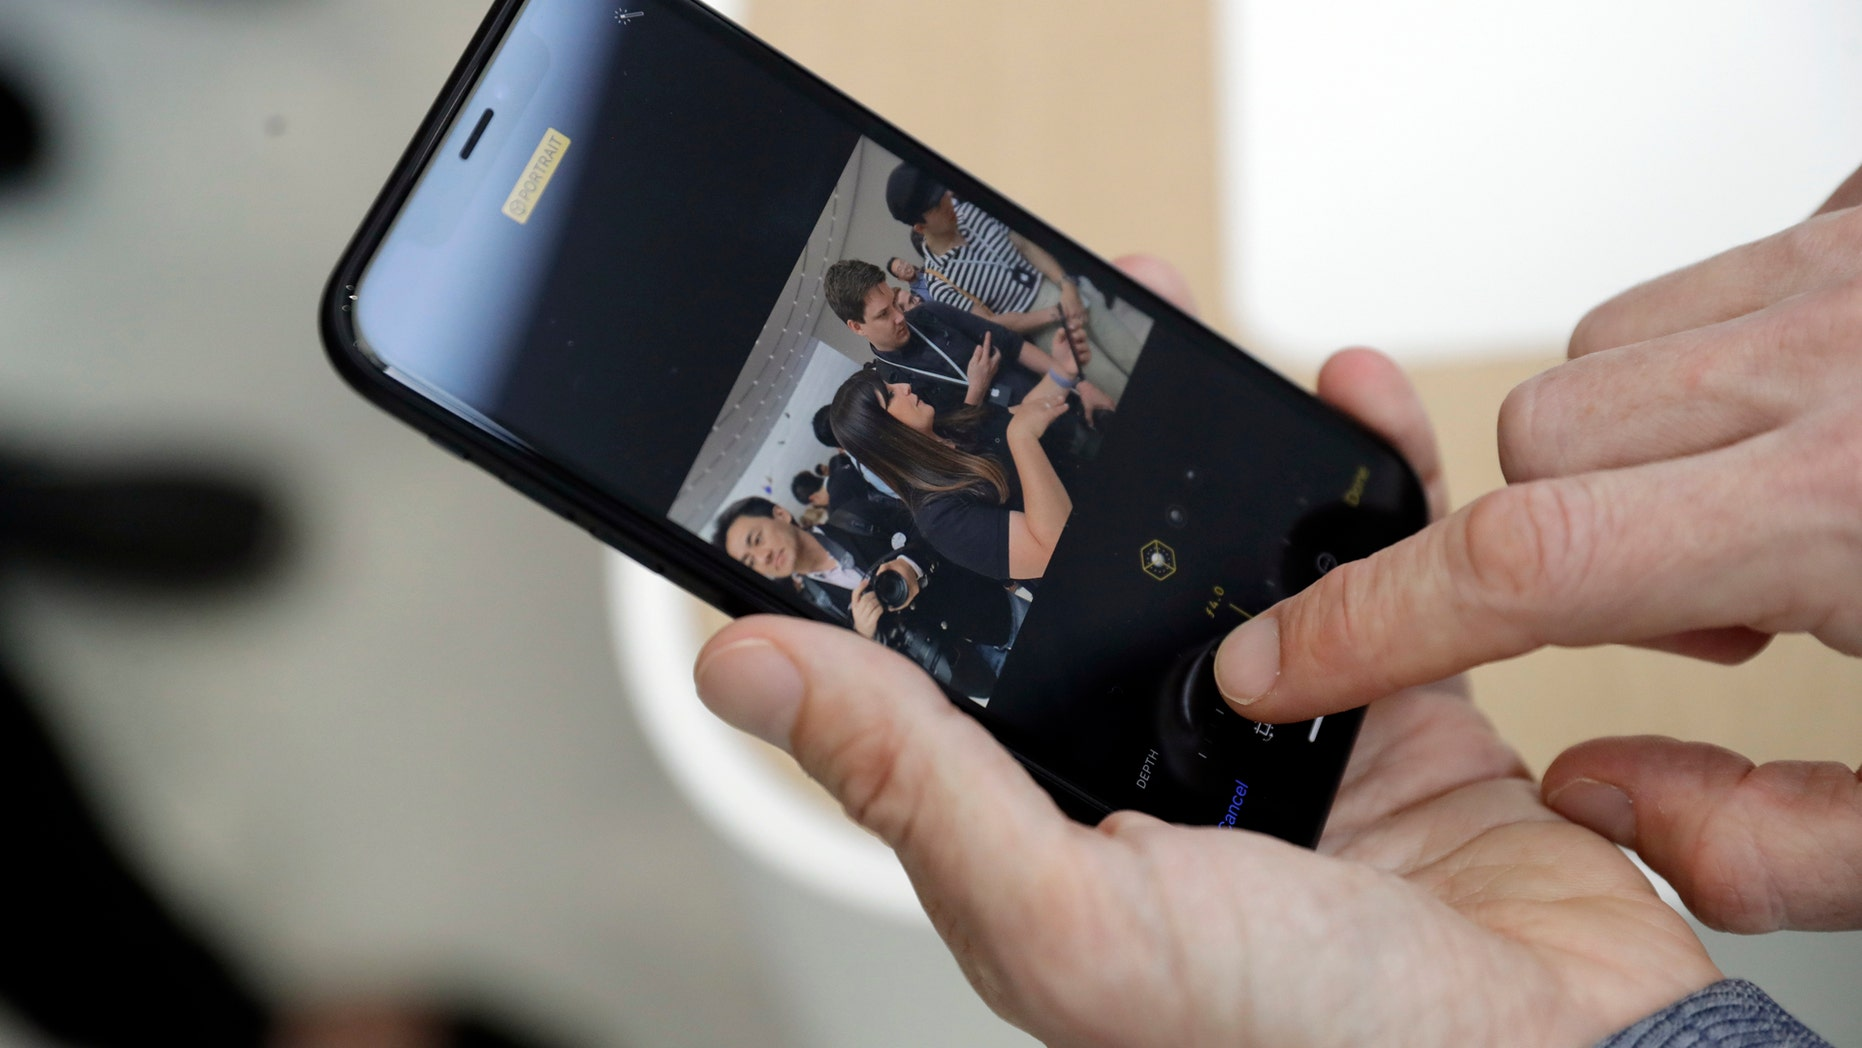 The new picture controls features are shown on an iPhone XR during an event to announce new products Wednesday, Sept. 12, 2018, in Cupertino, Calif. (AP Photo/Marcio Jose Sanchez)